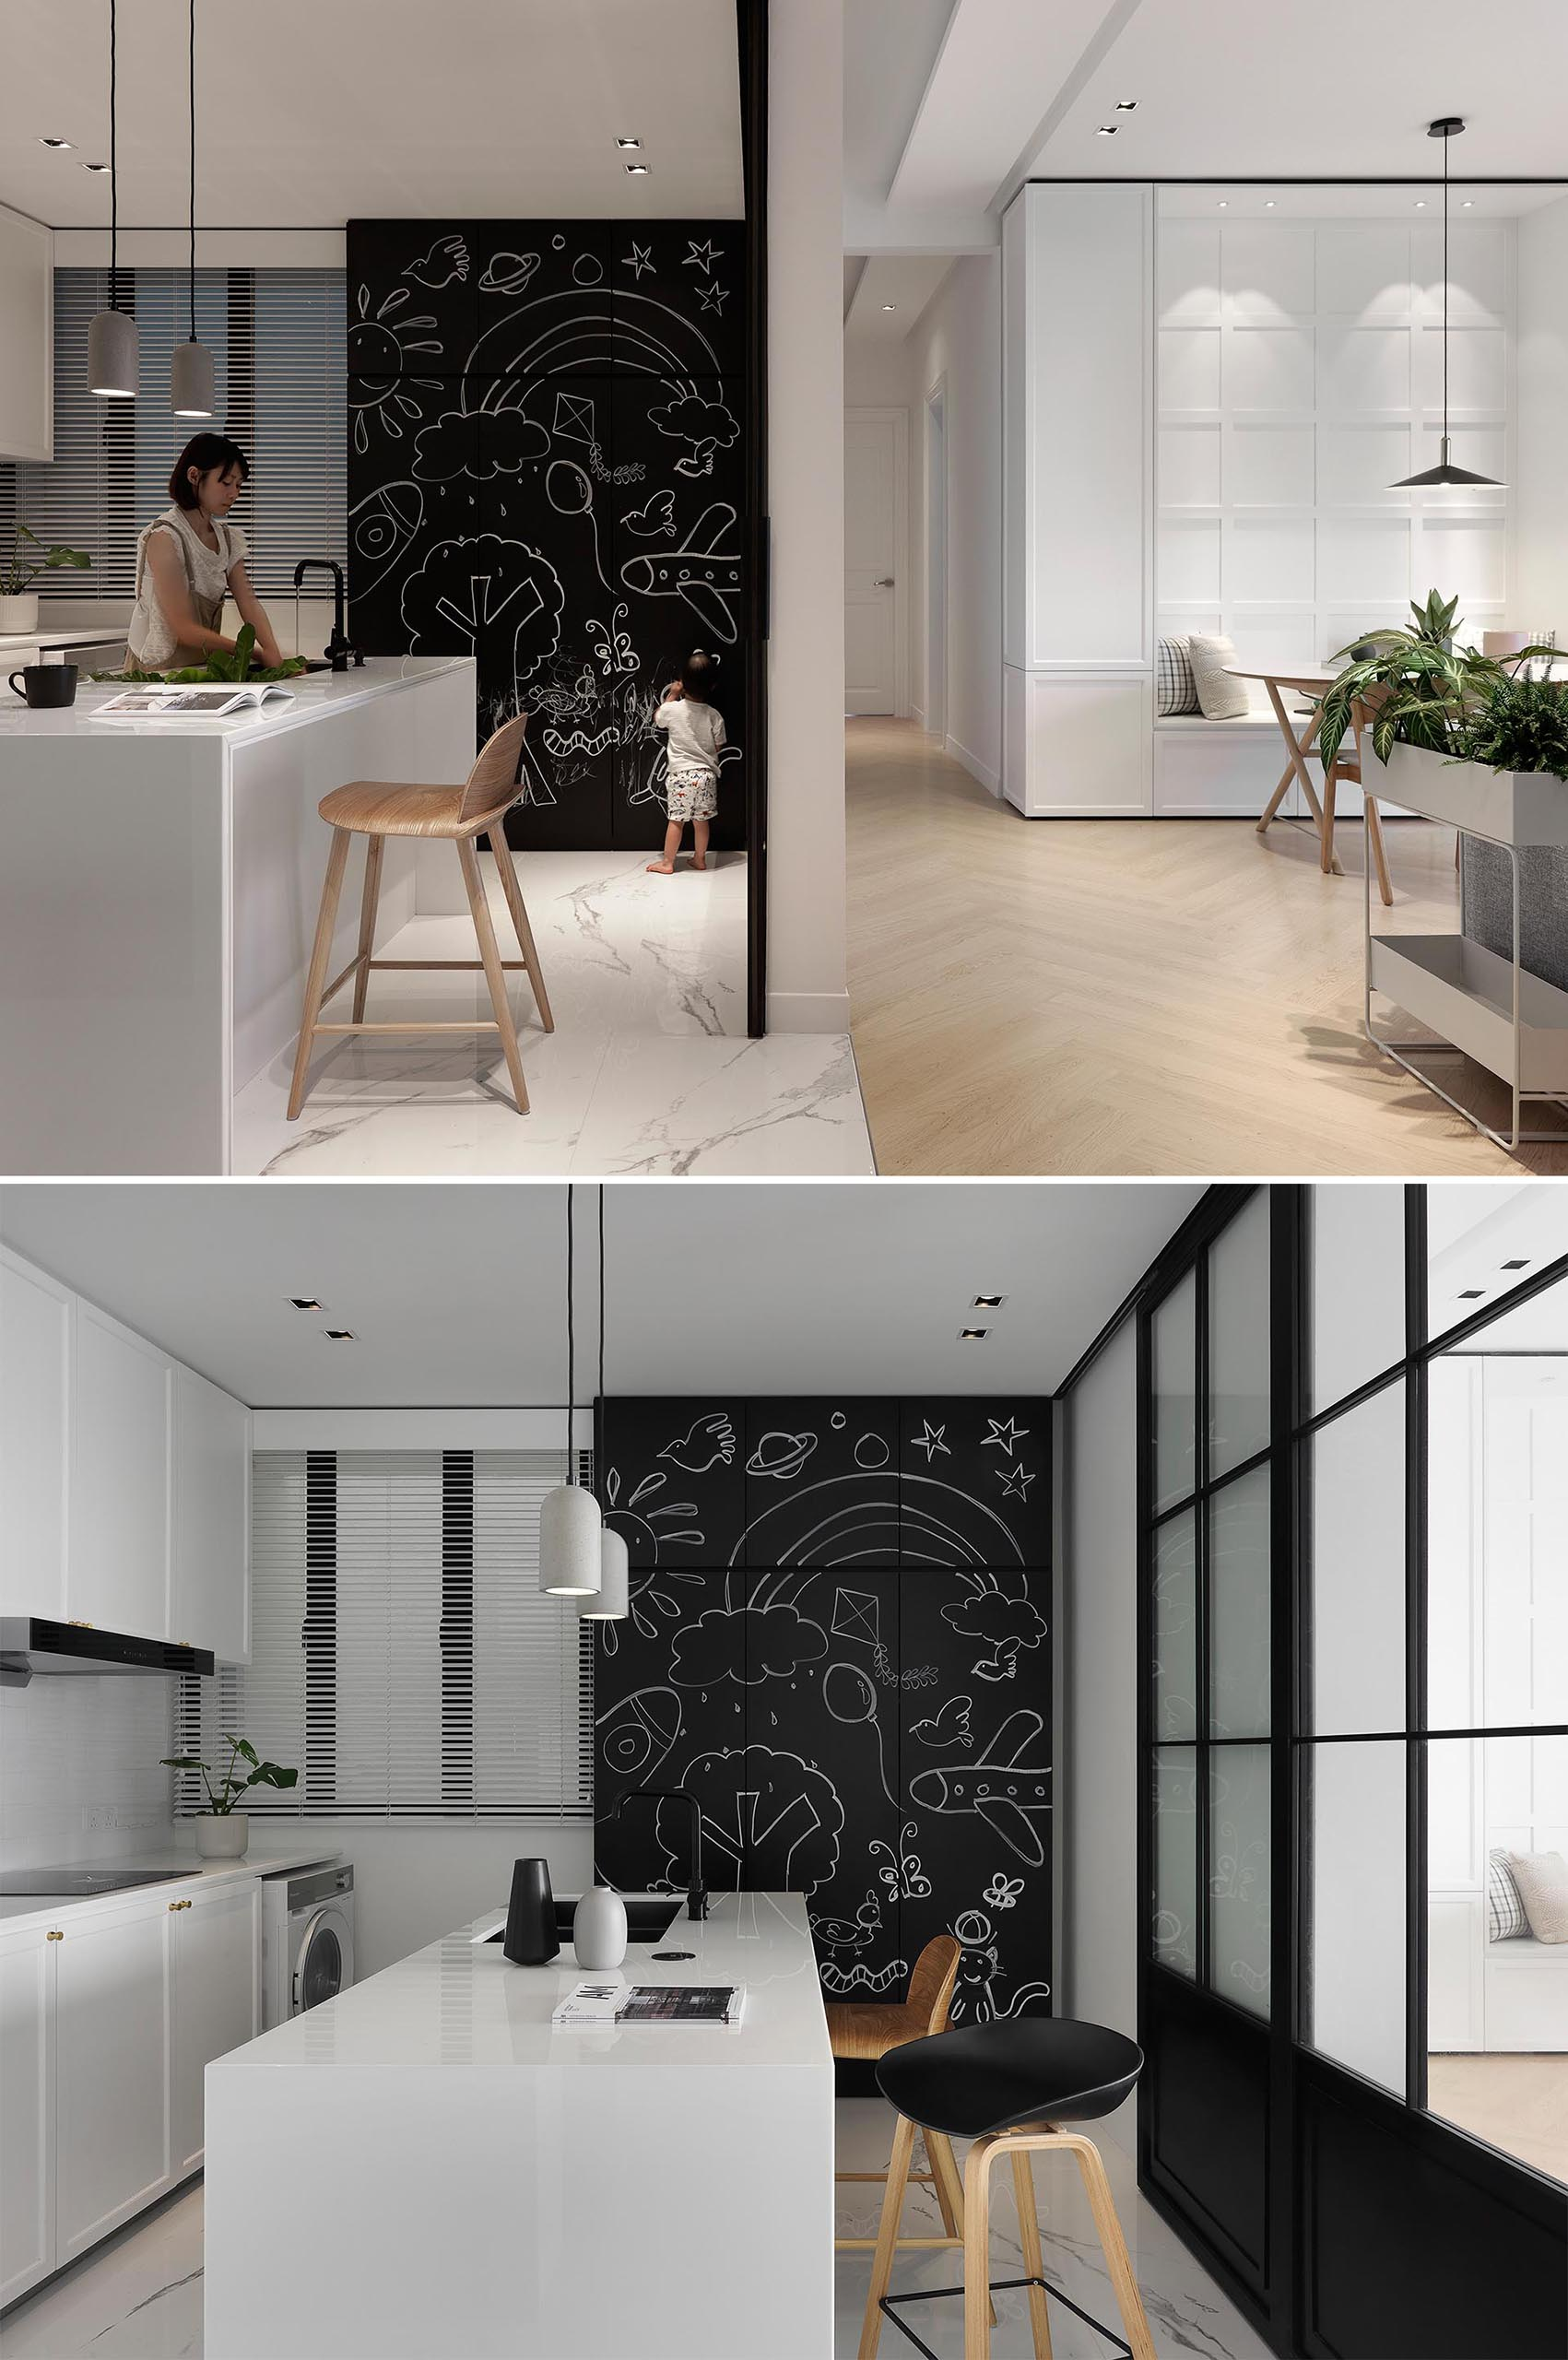 This minimalist kitchen features white cabinets and a white island, as well as a contrasting section of cabinets with chalkboard fronts.